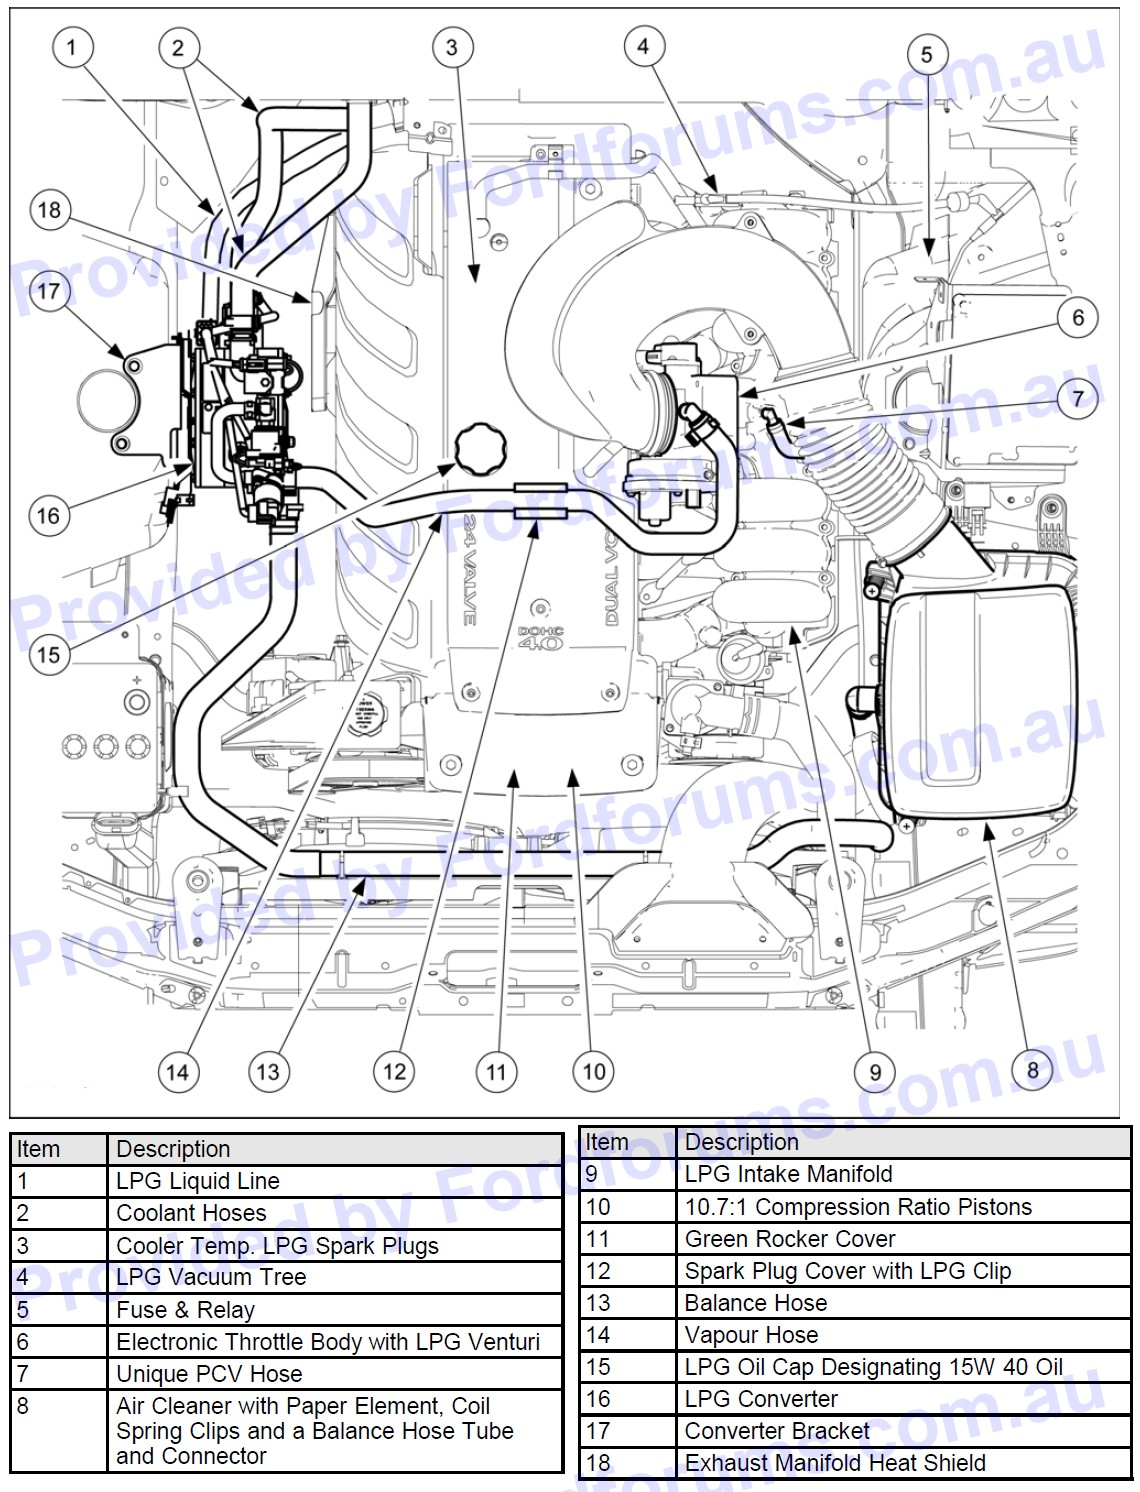 bf falcon wiring diagram 2006 ford focus fuse panel ba ute jeffdoedesign